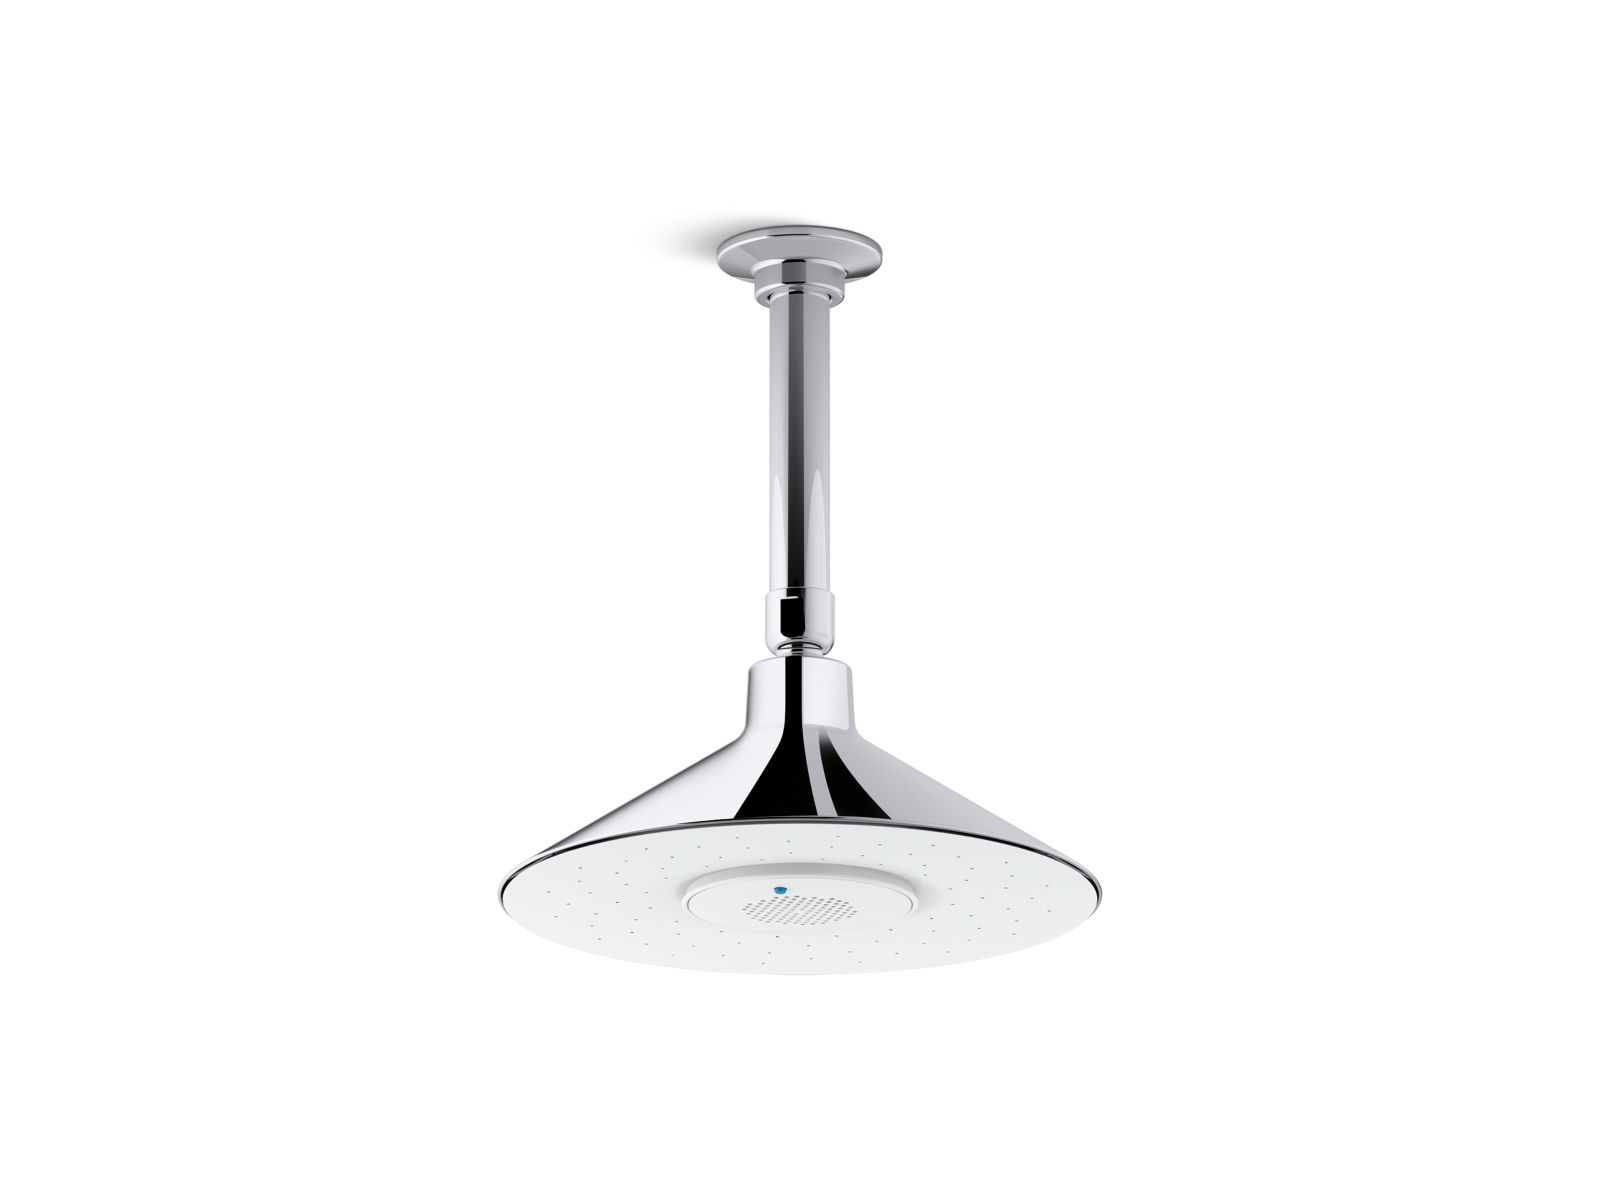 Kohler Moxie® K-99105-CP 2.5 gpm rainhead with wireless speaker Polished Chrome